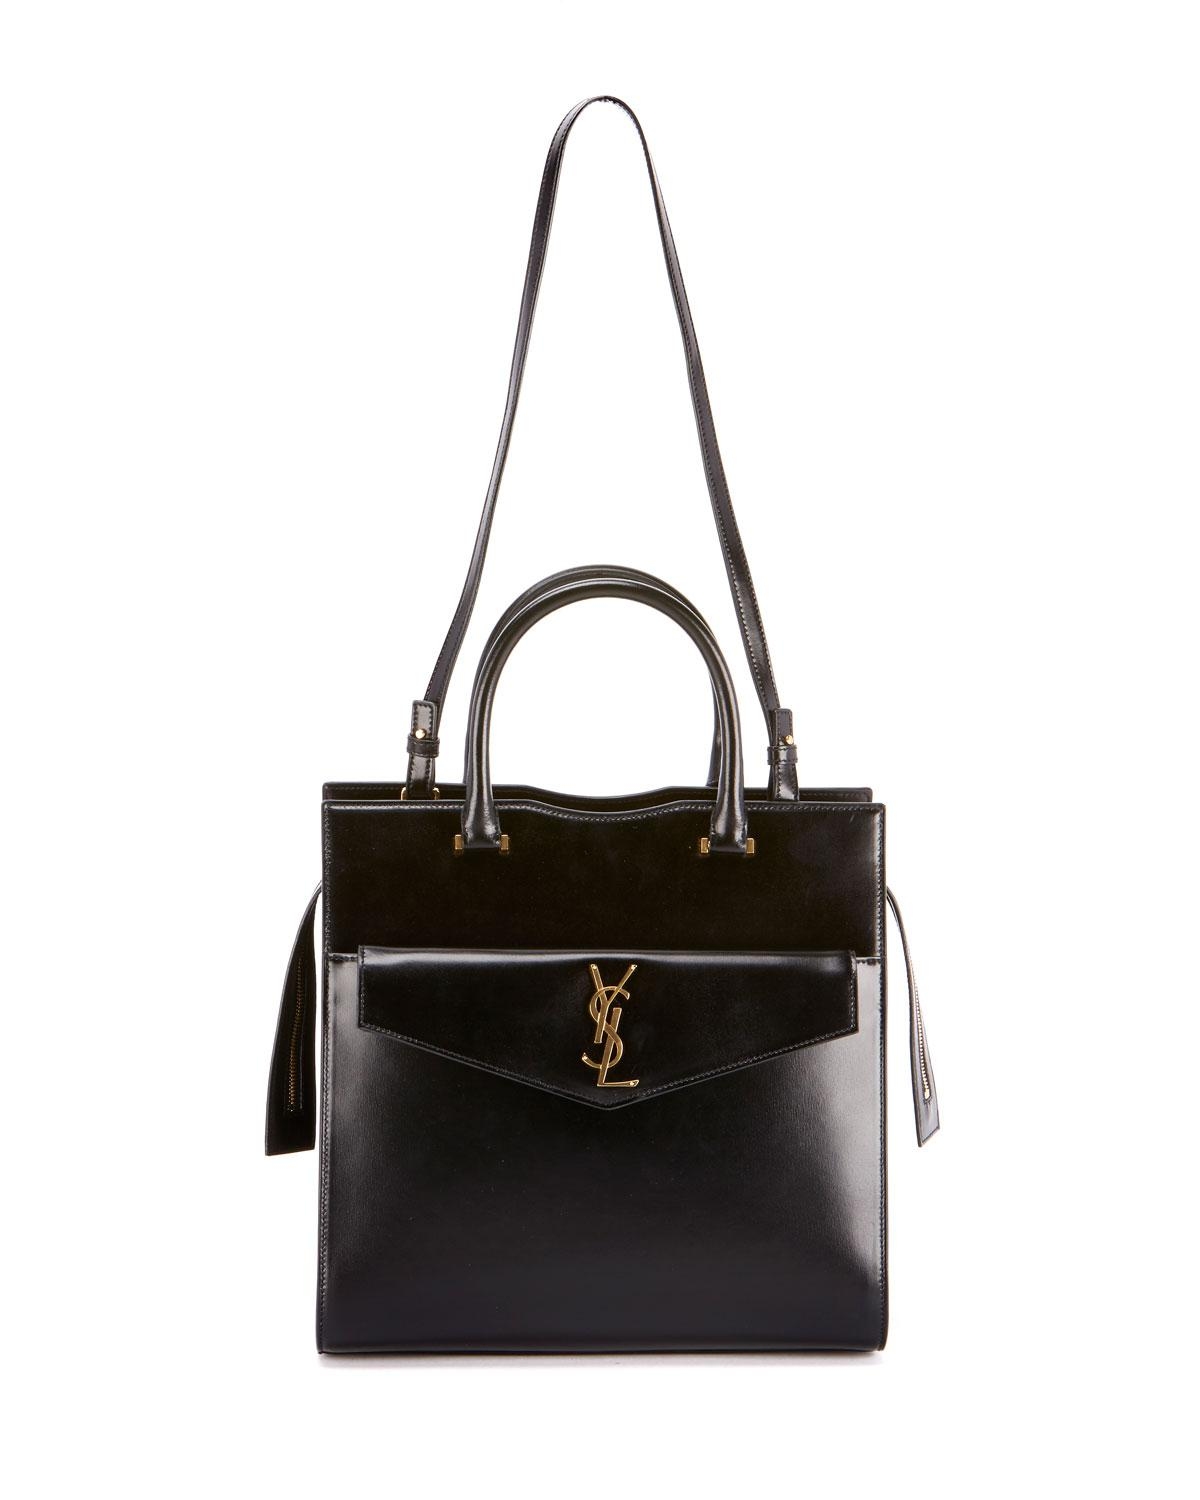 8663707b2191 Saint Laurent. Women s Black Uptown Medium Monogram Ysl Cabas Cuir Glace  Satchel Bag